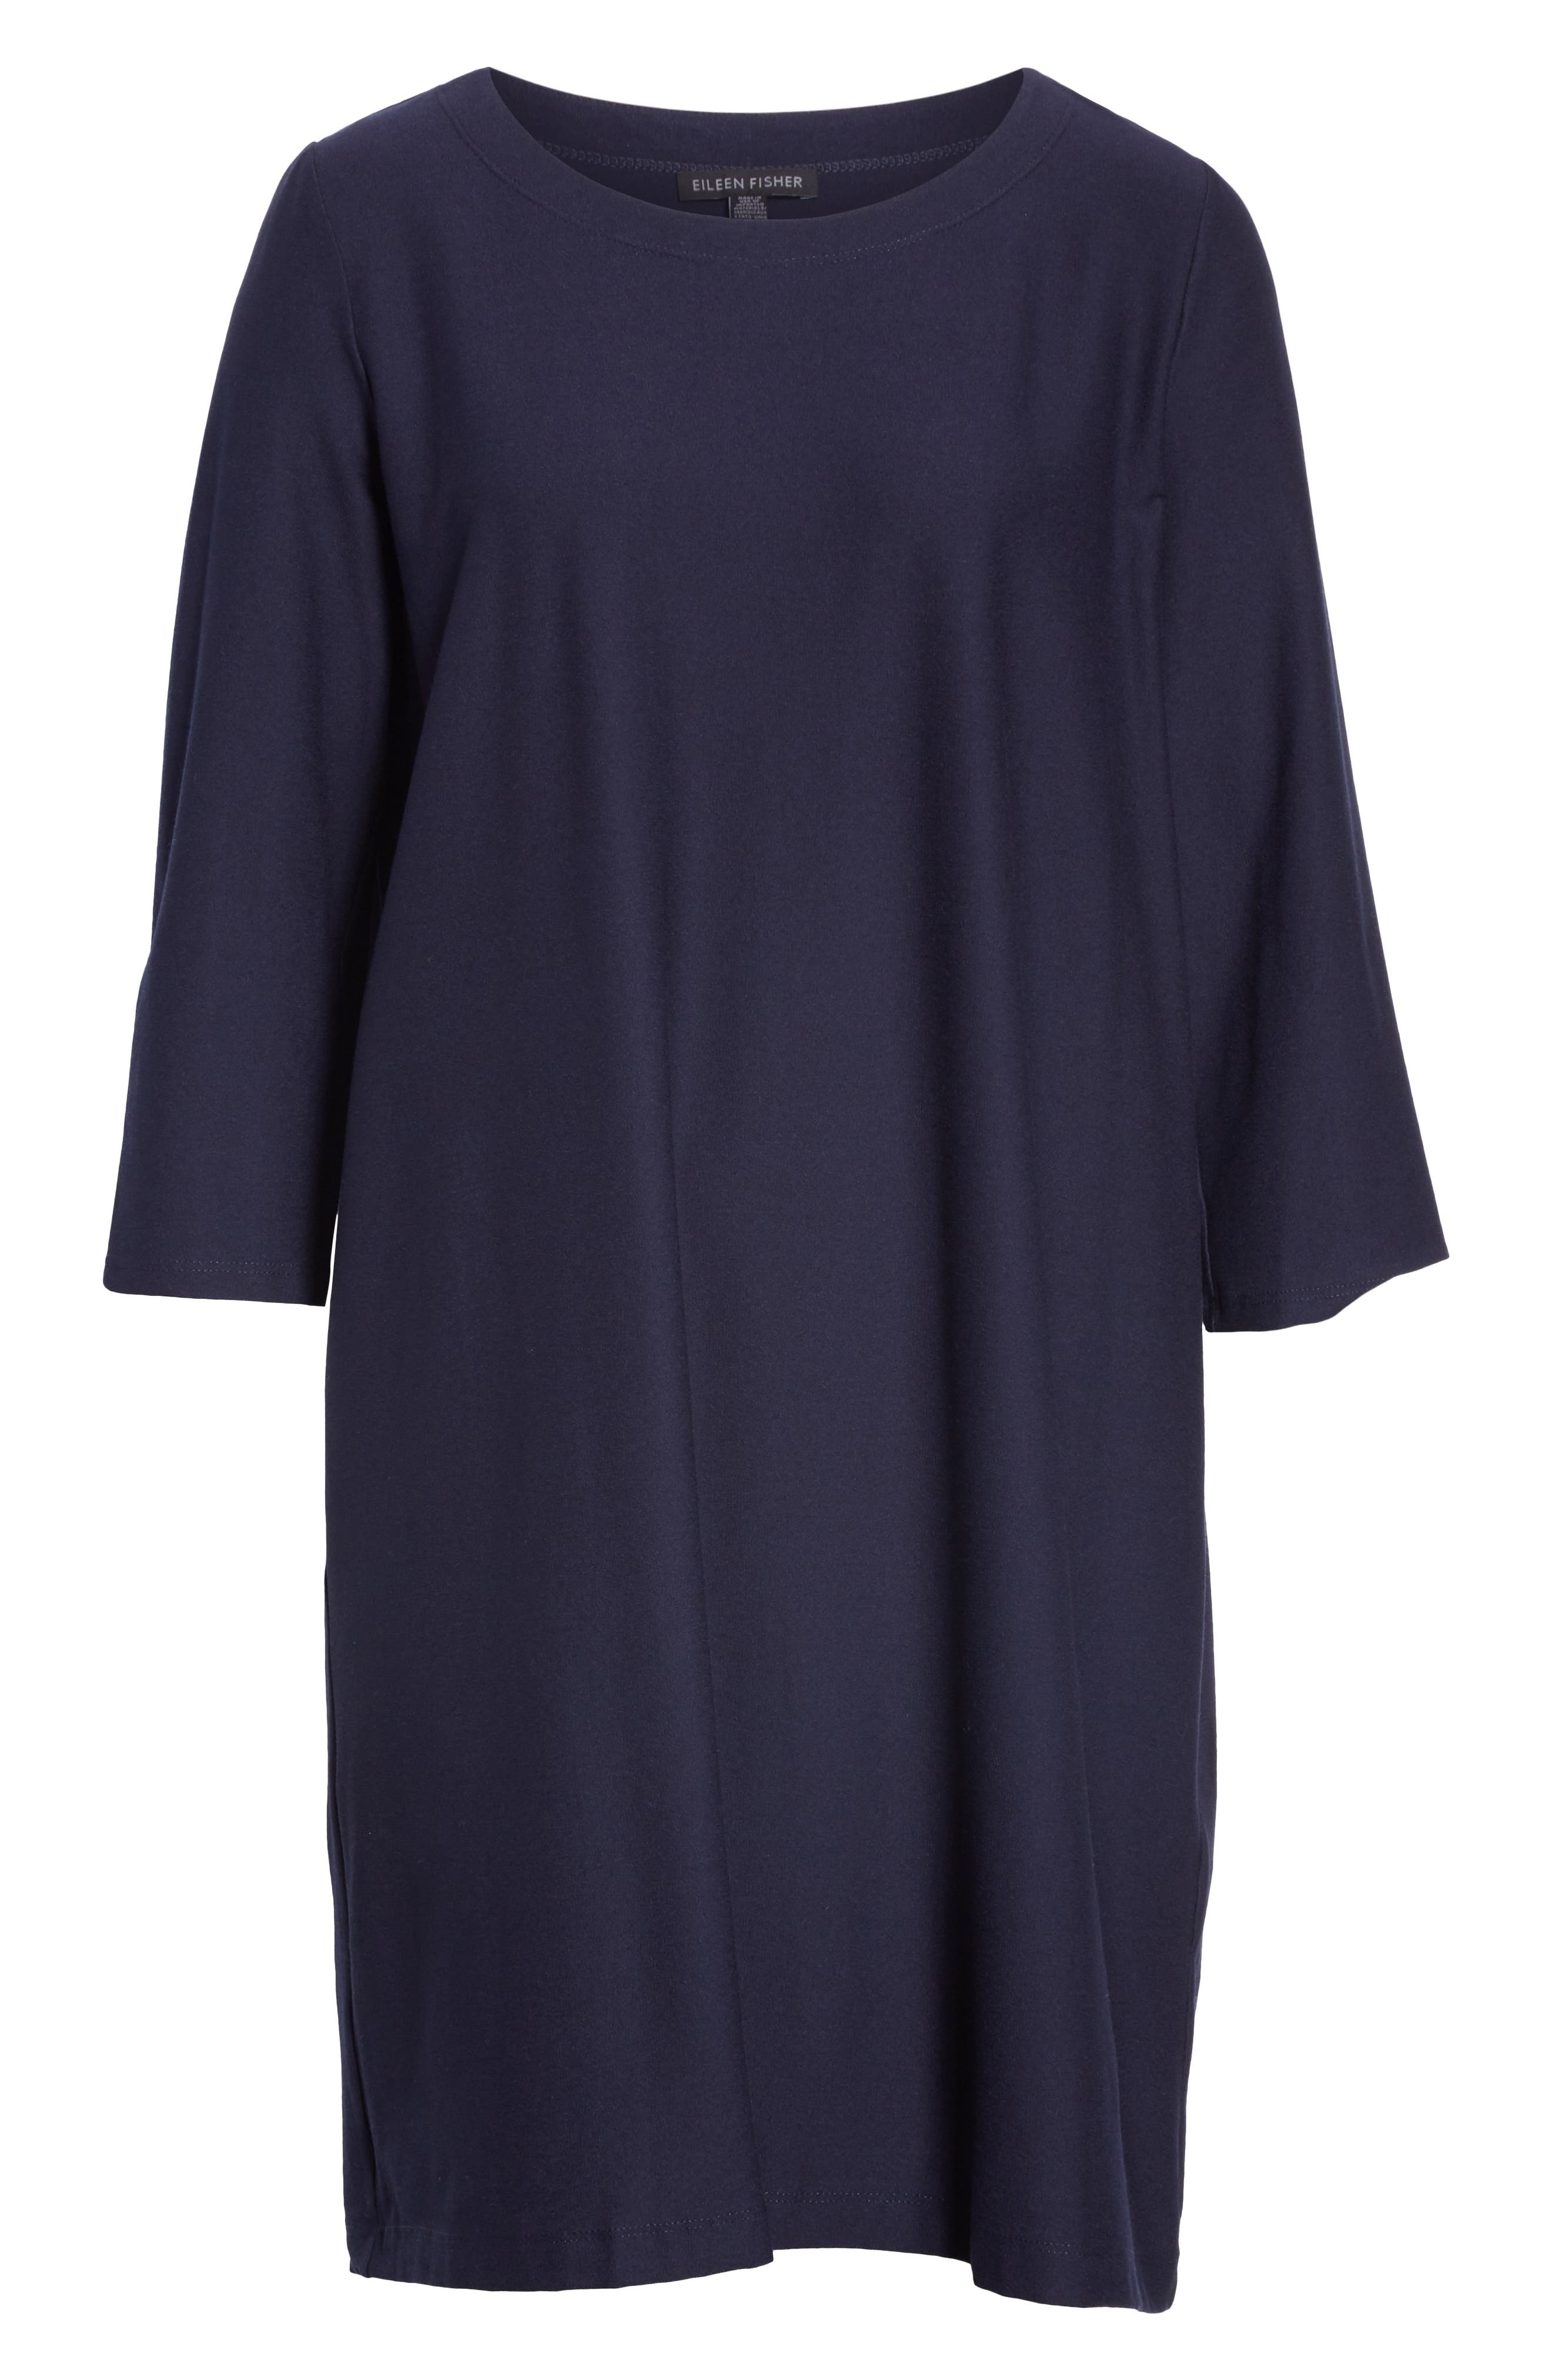 Scoop Neck Knee Length Shift Dress,                             Alternate thumbnail 6, color,                             MIDNIGHT